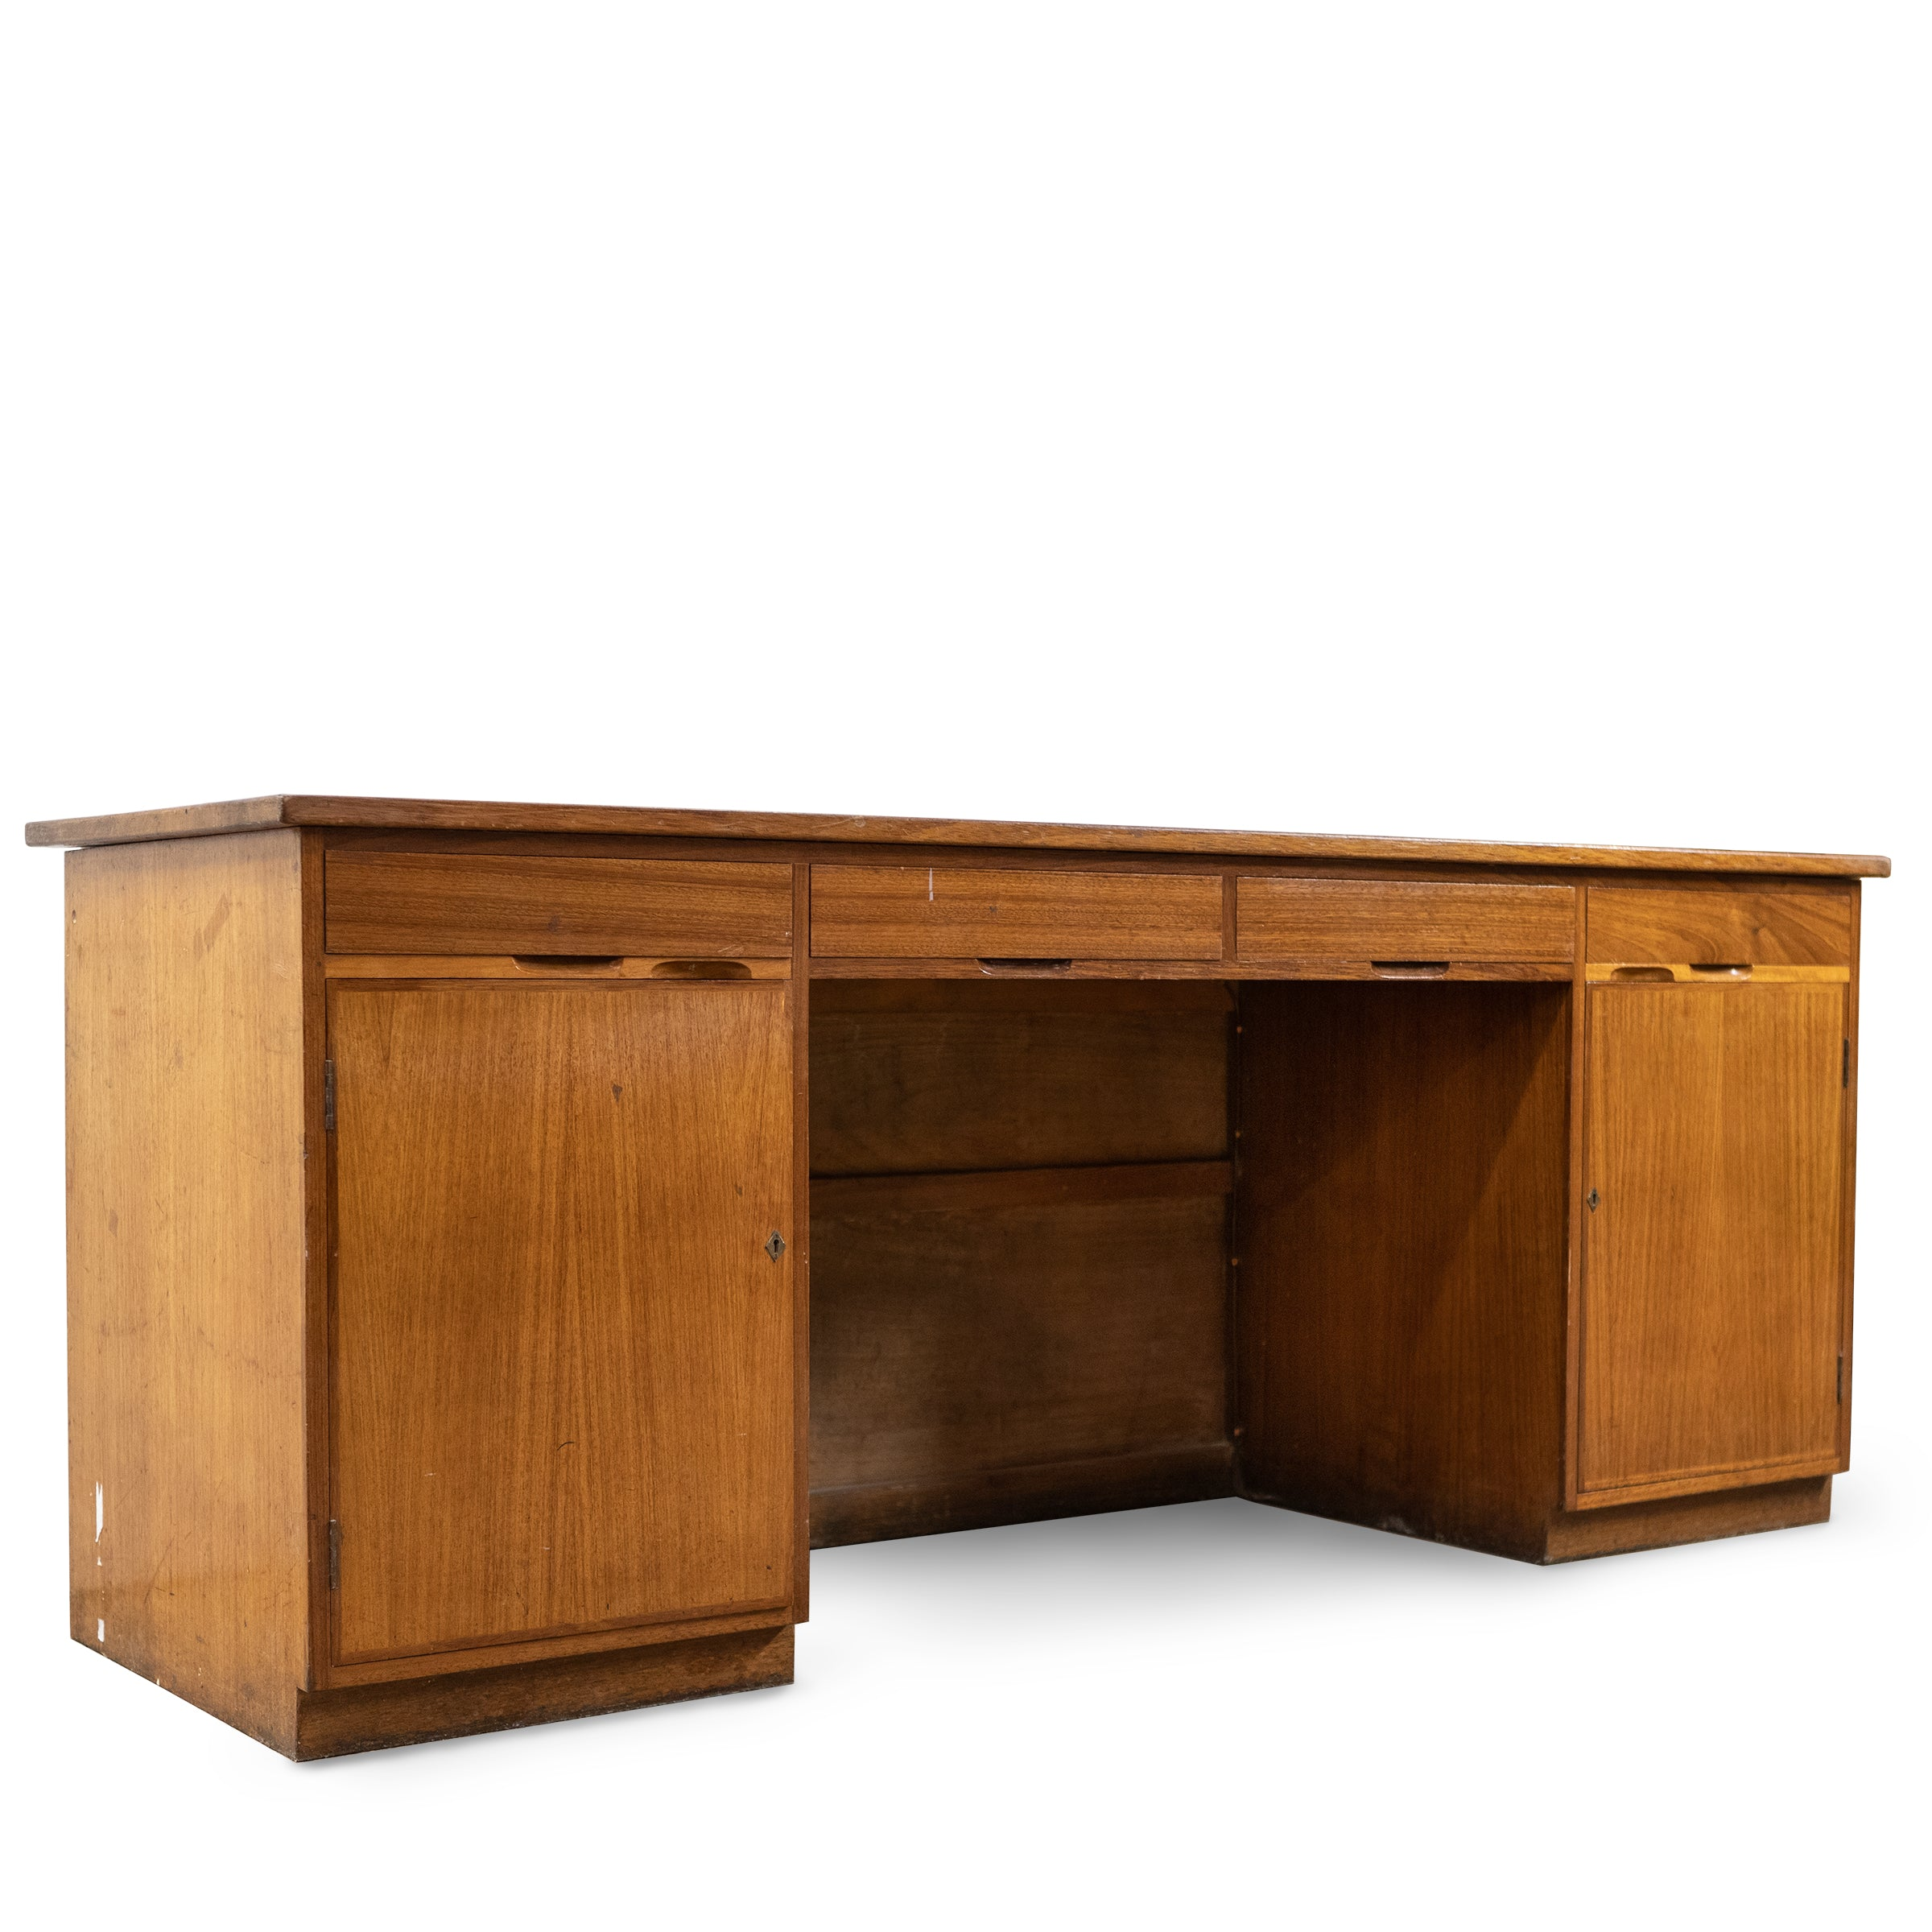 Reclaimed Mid-Century Solid Teak Sideboard Desk Unit With Cupboards & Drawers